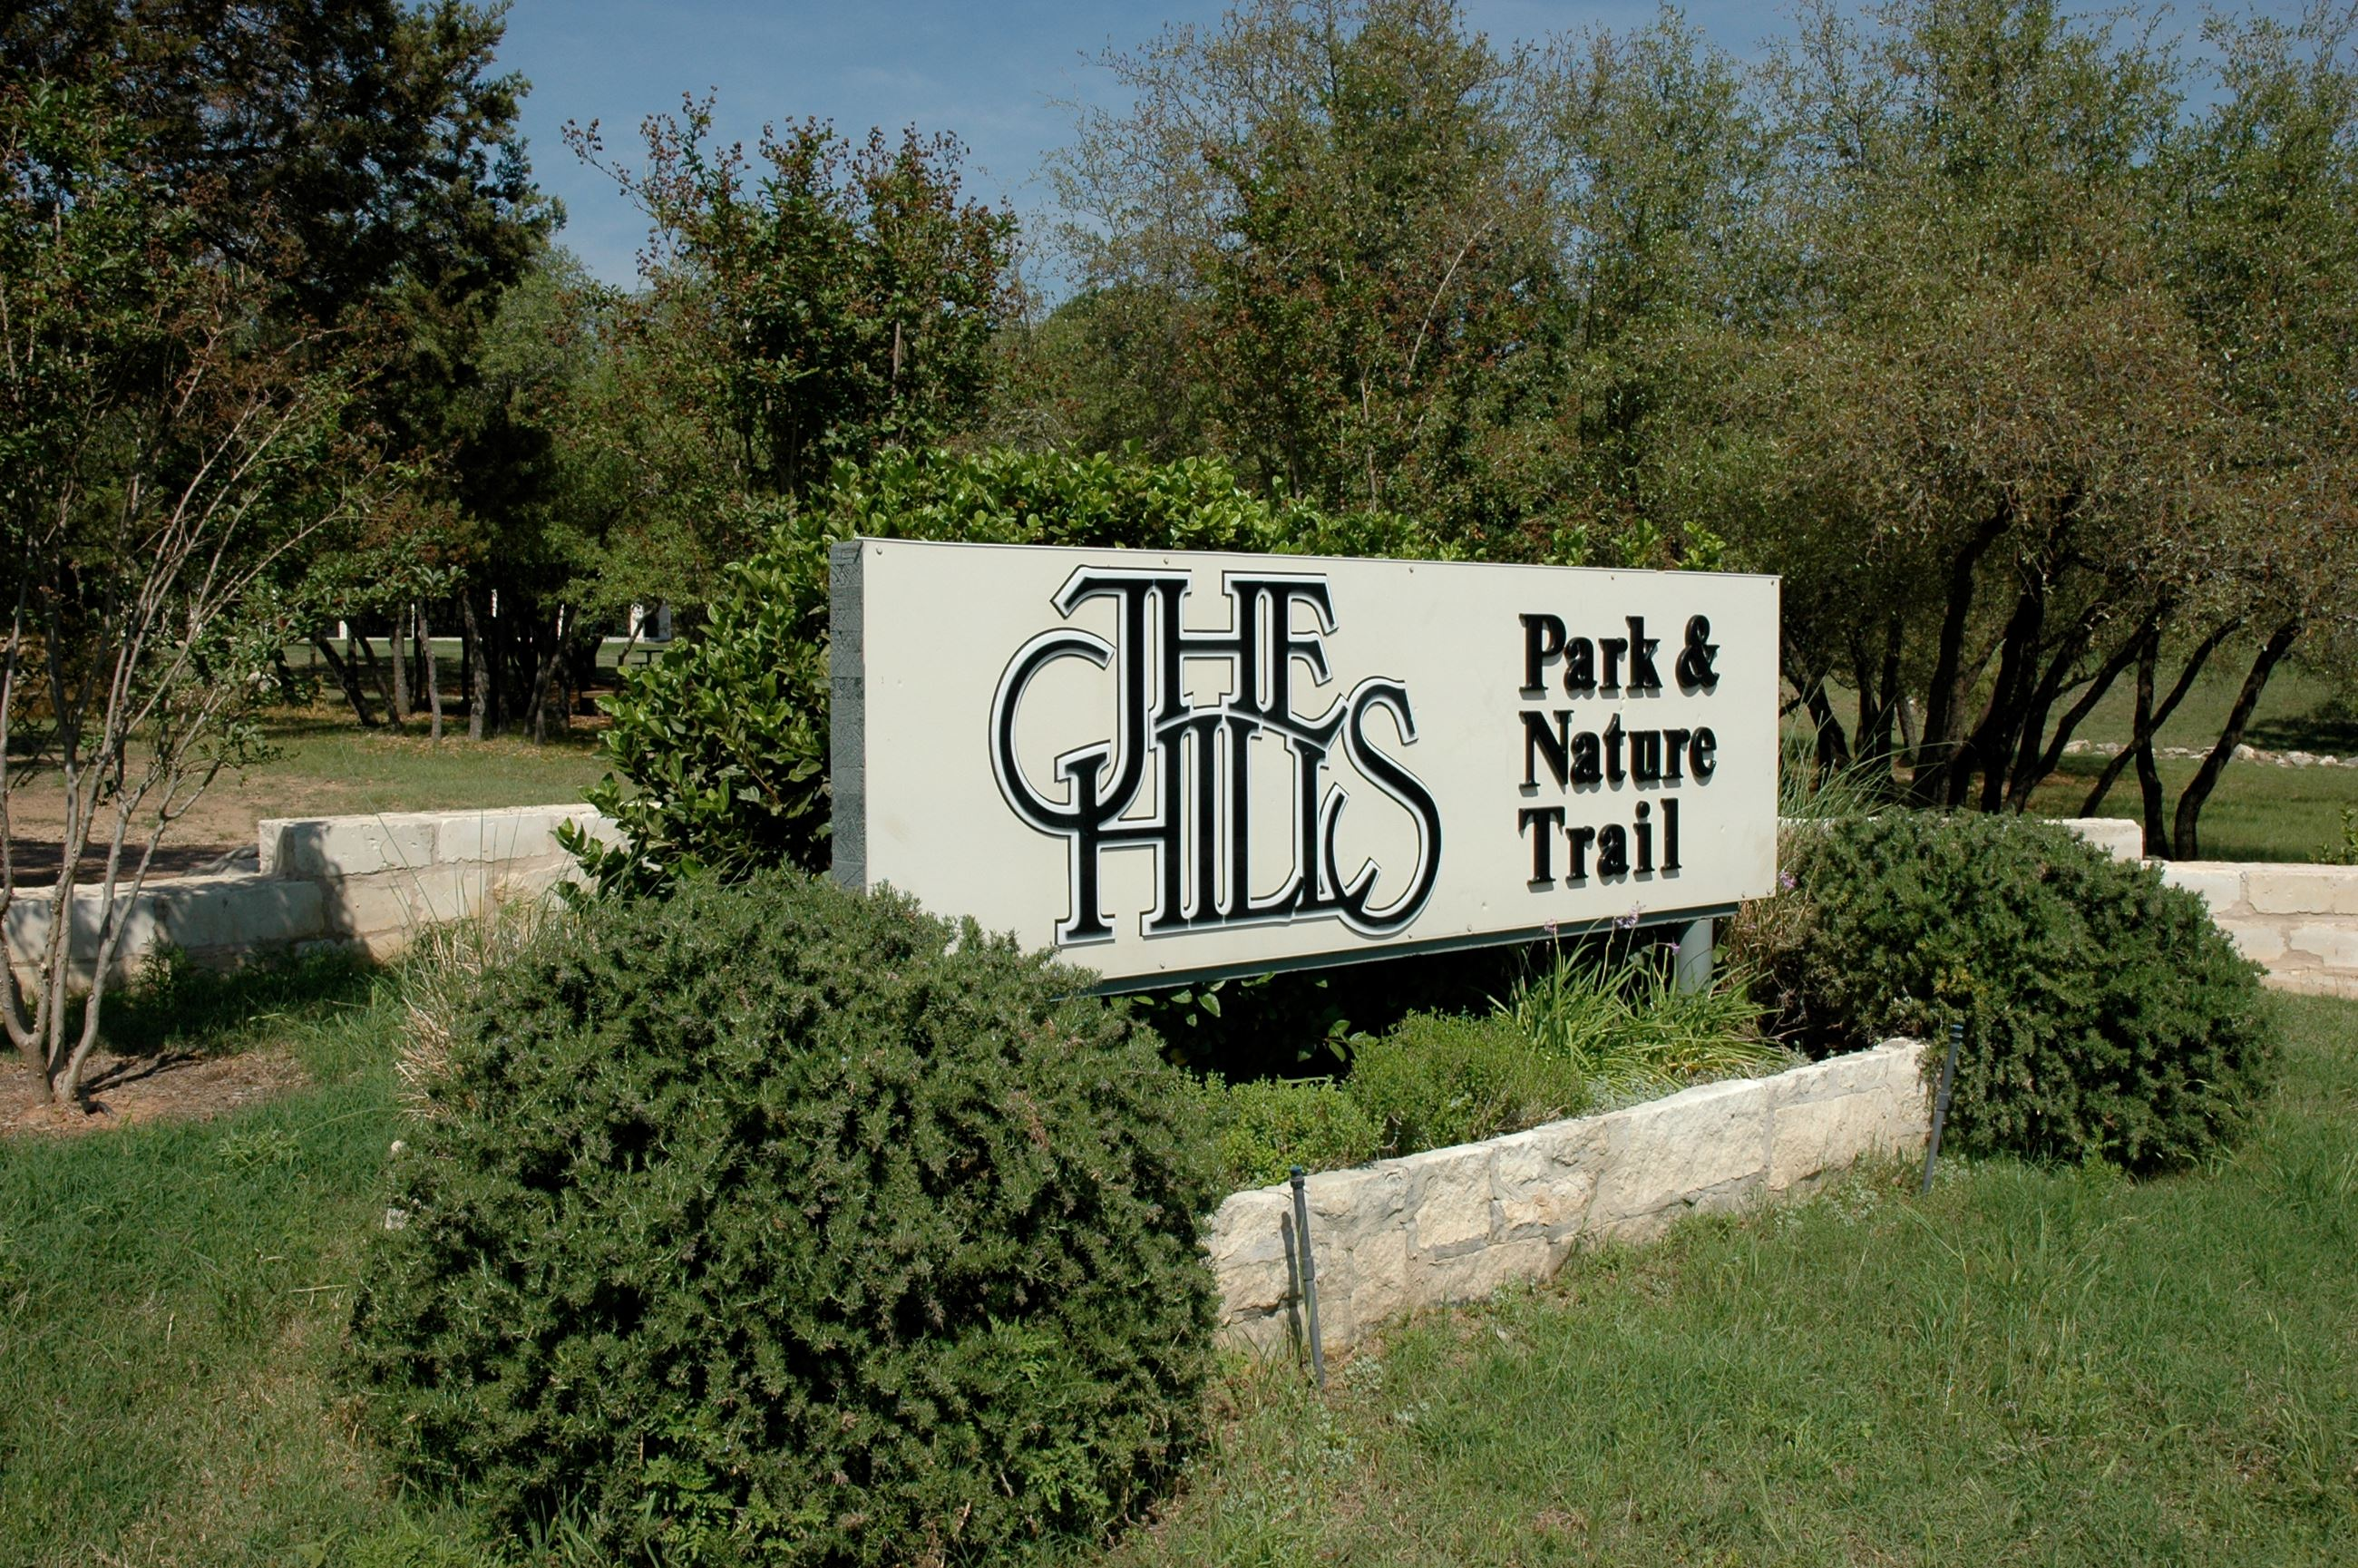 The Hills Park and Nature Trail